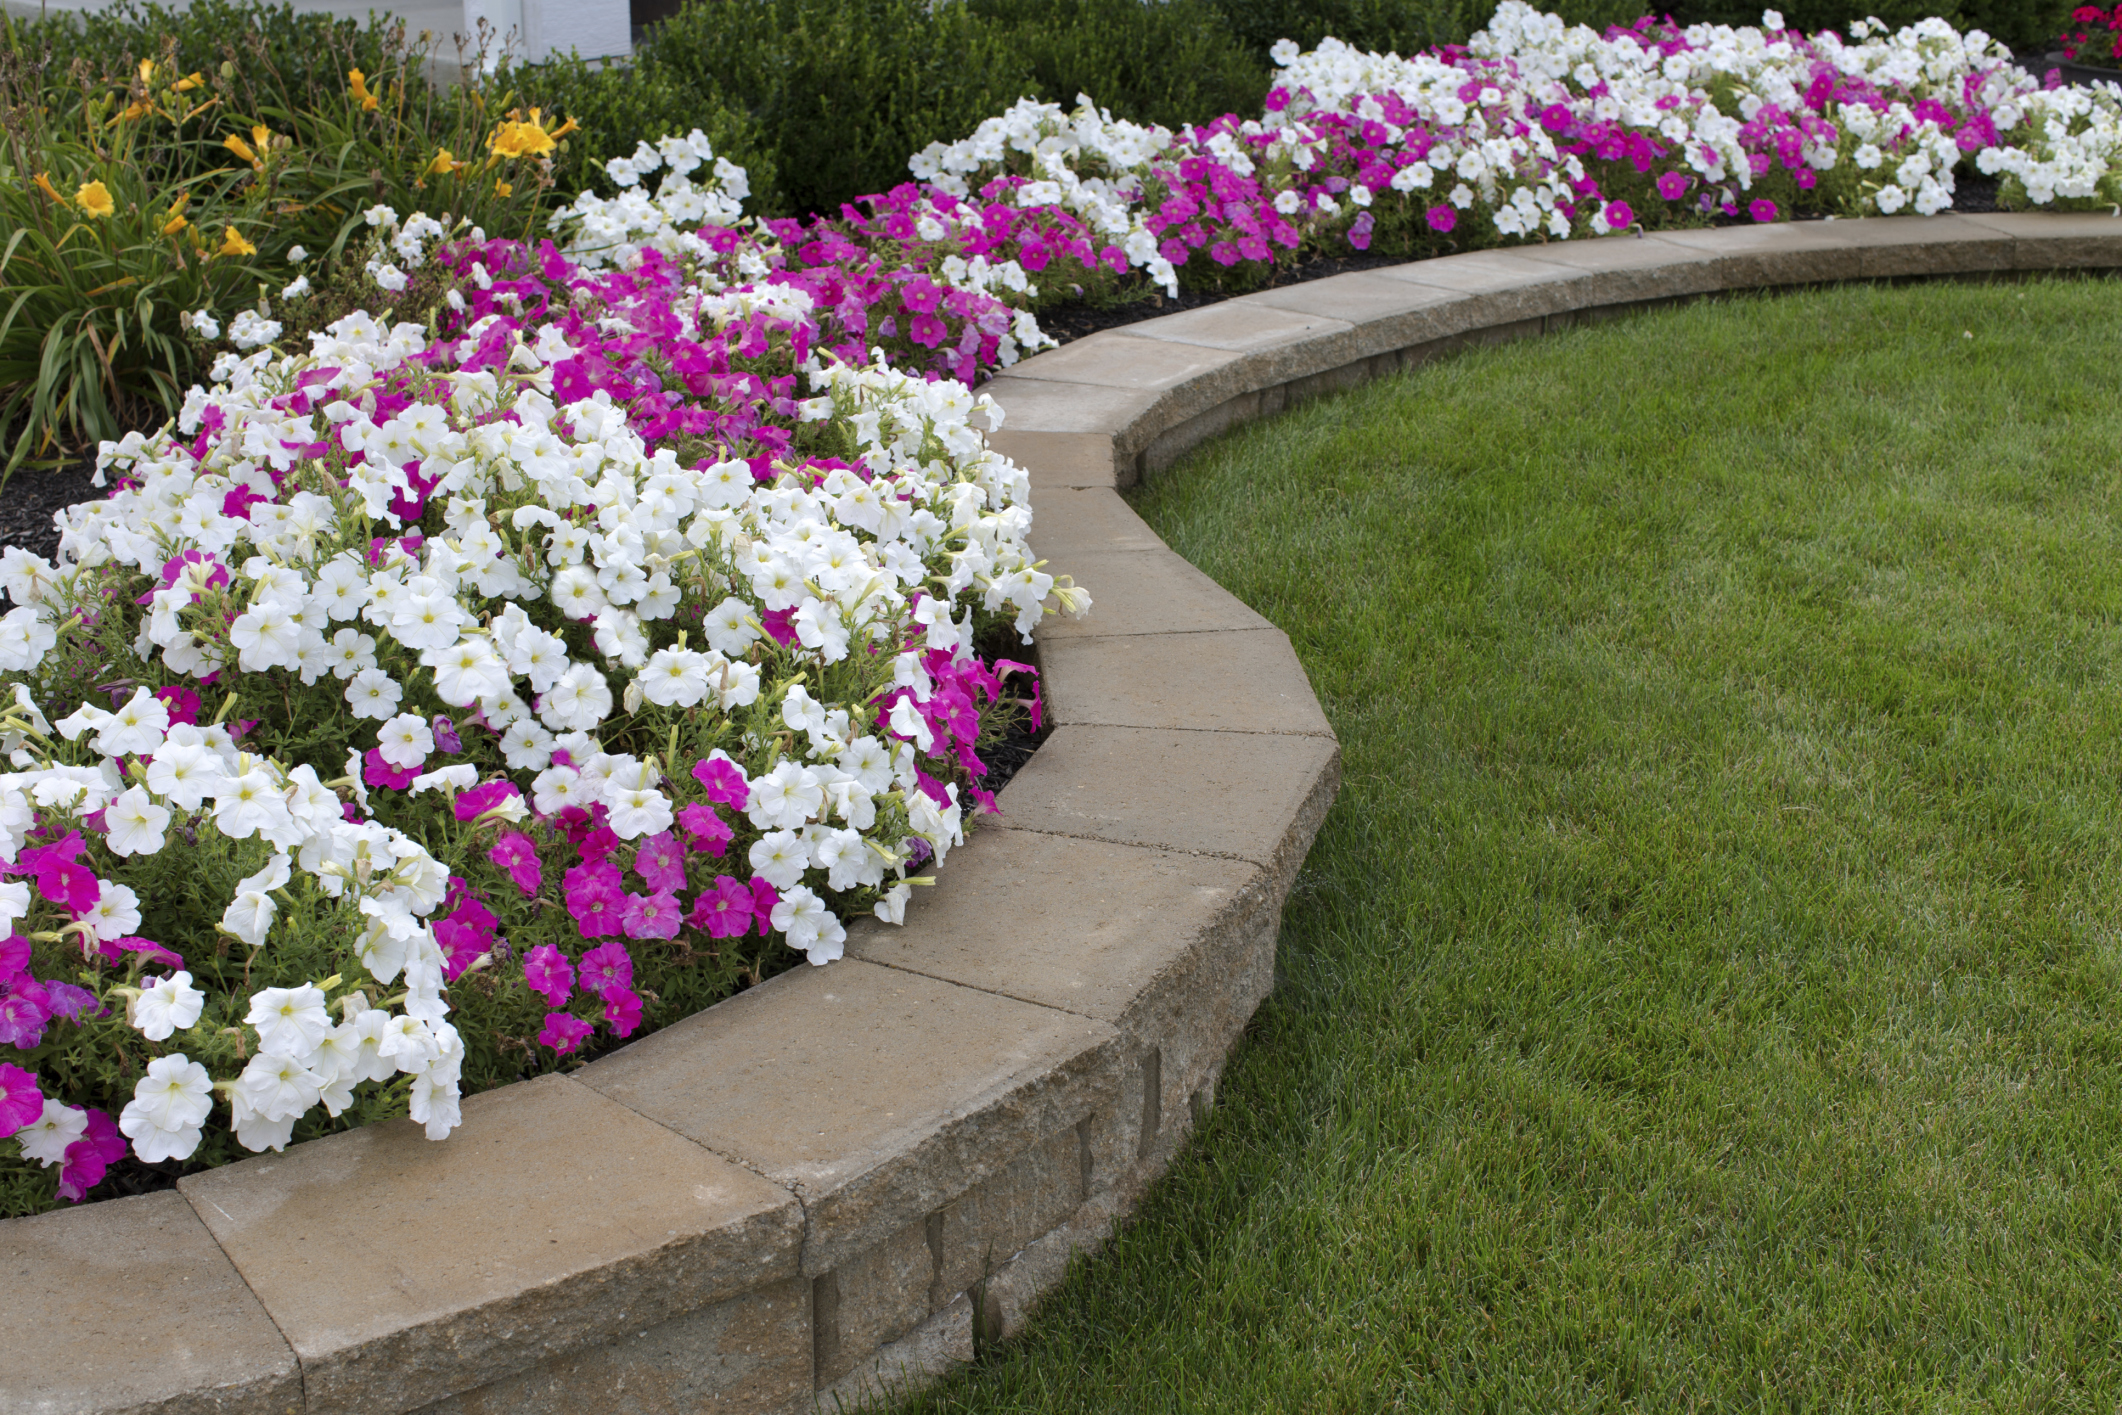 Planting Ideas for Along the Side of the Garage | Home Guides | SF on backyard design zone 6, garden design zone 8, rock garden plants zone 6, garden design zone 4, rain garden plants zone 6, garden design zone 9,